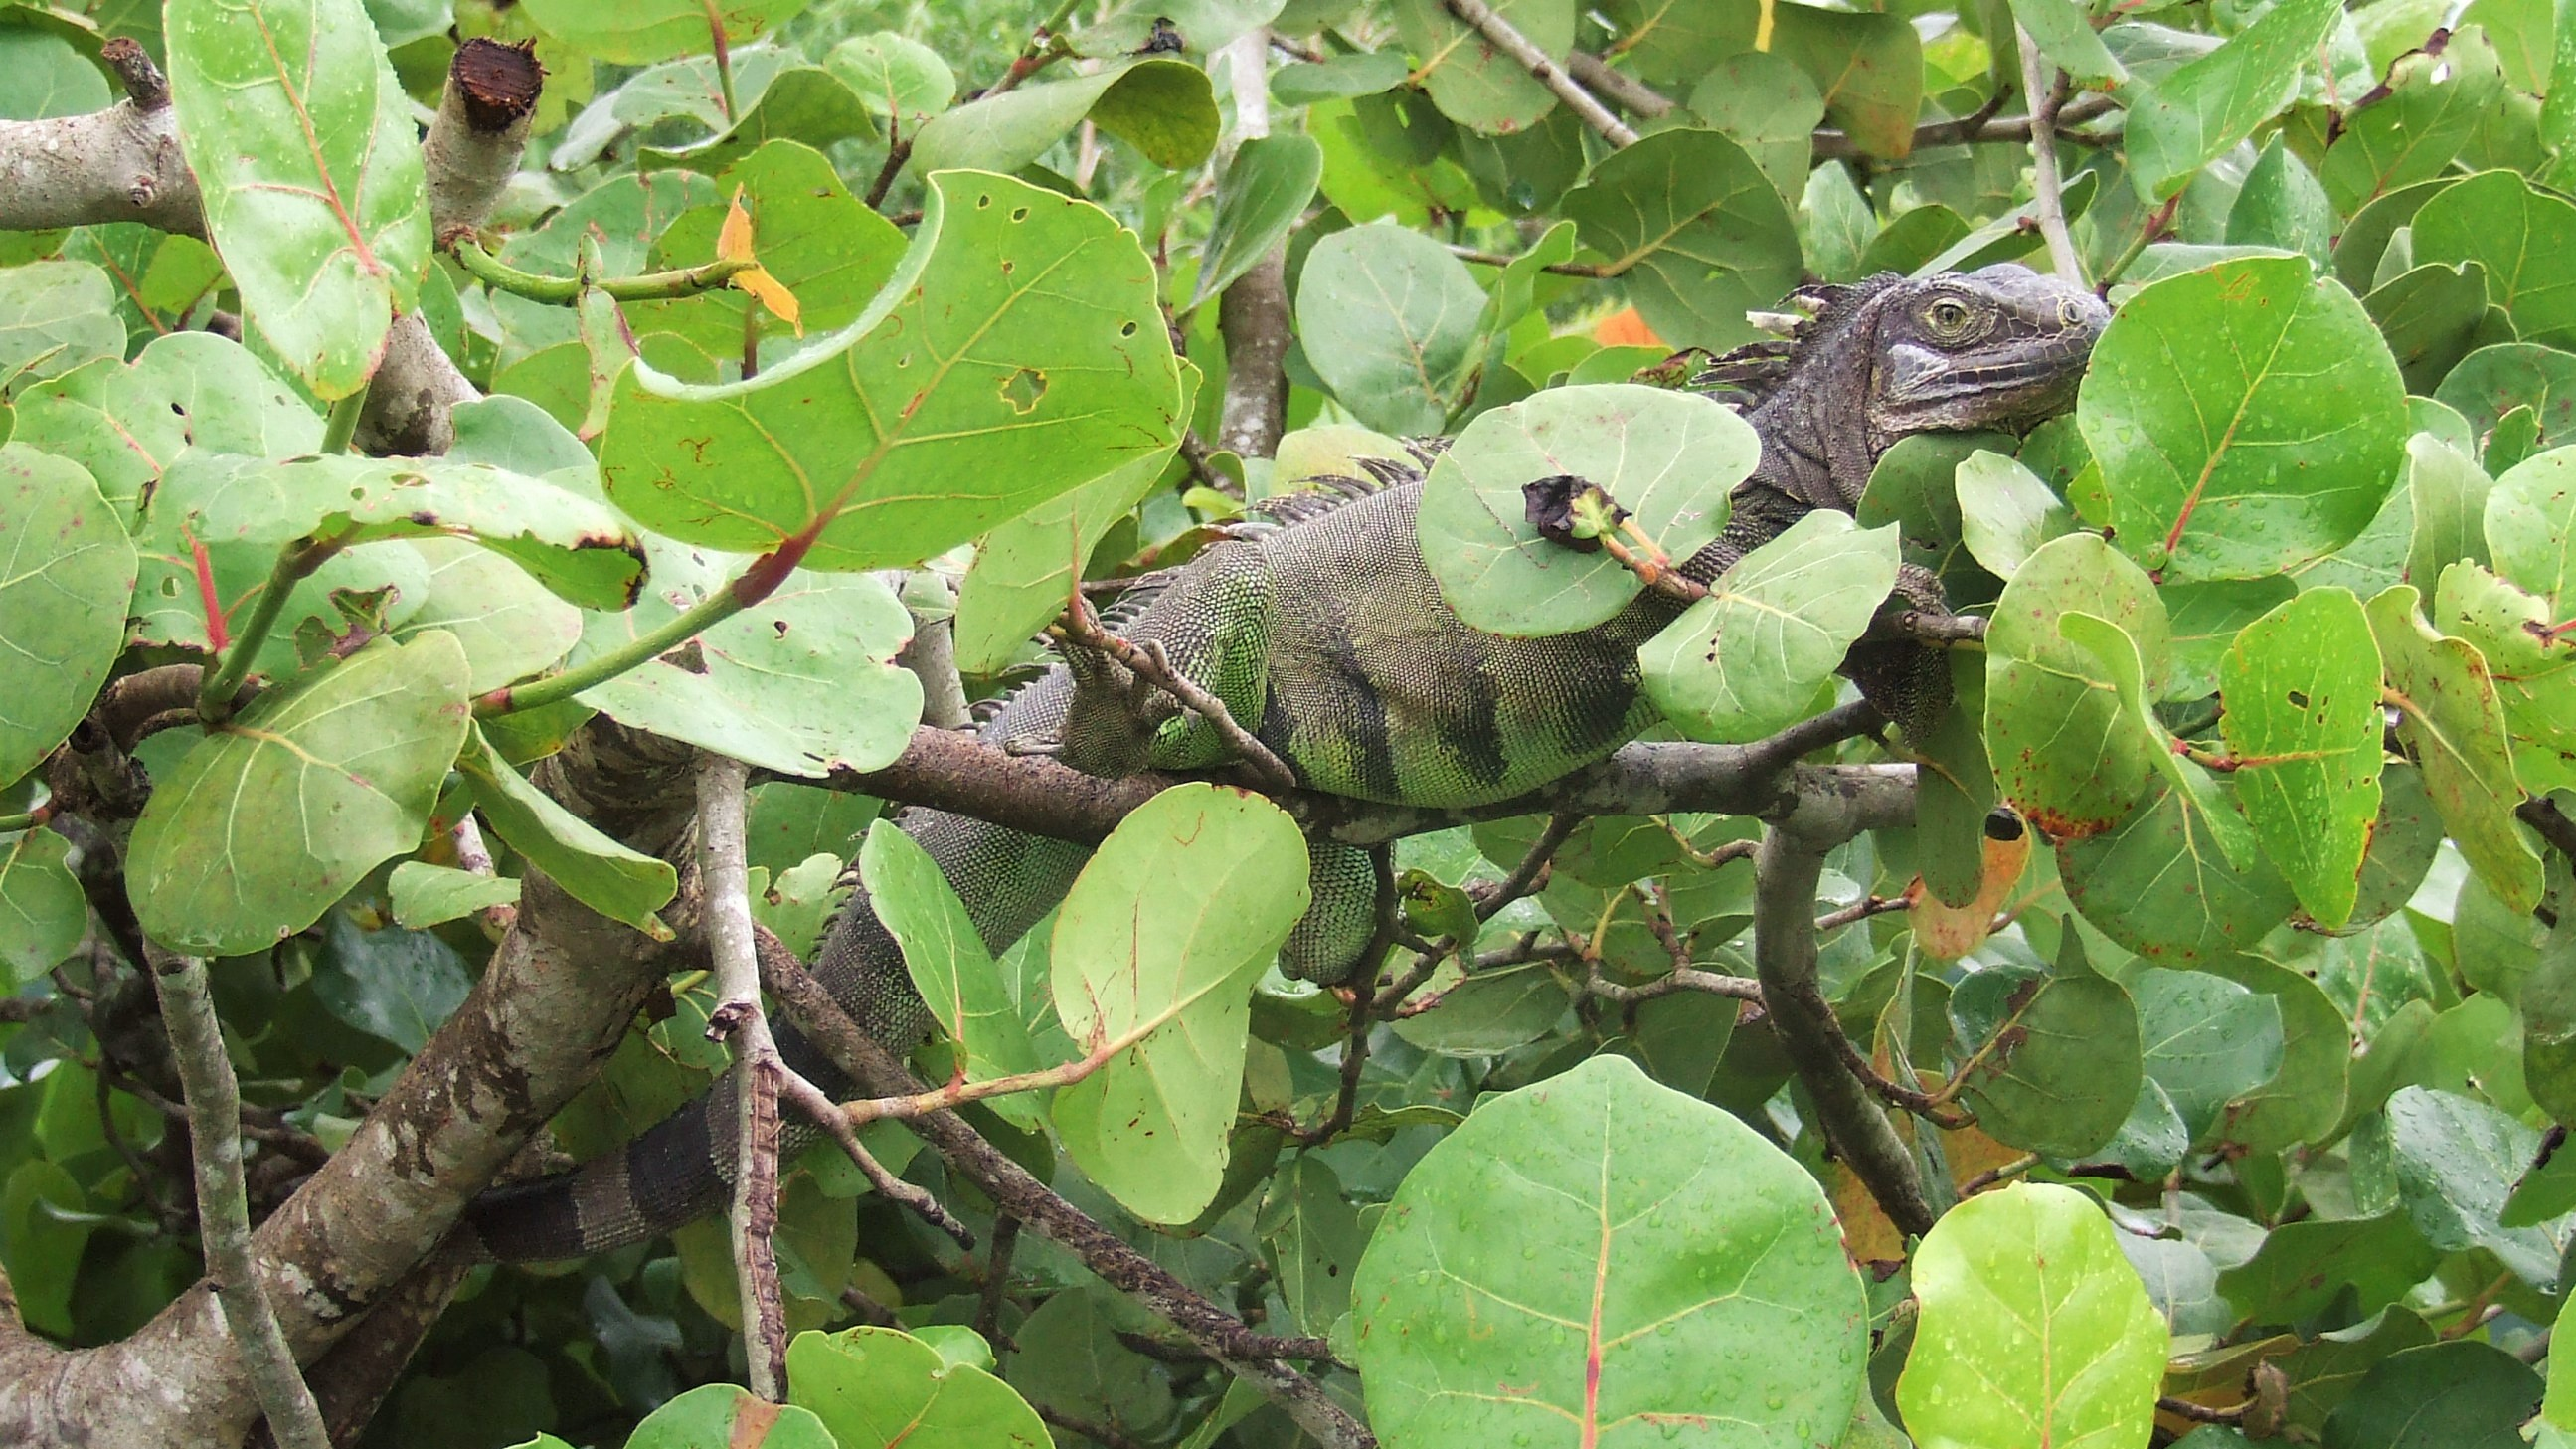 Green iguana resting on branches in sea grape plant.